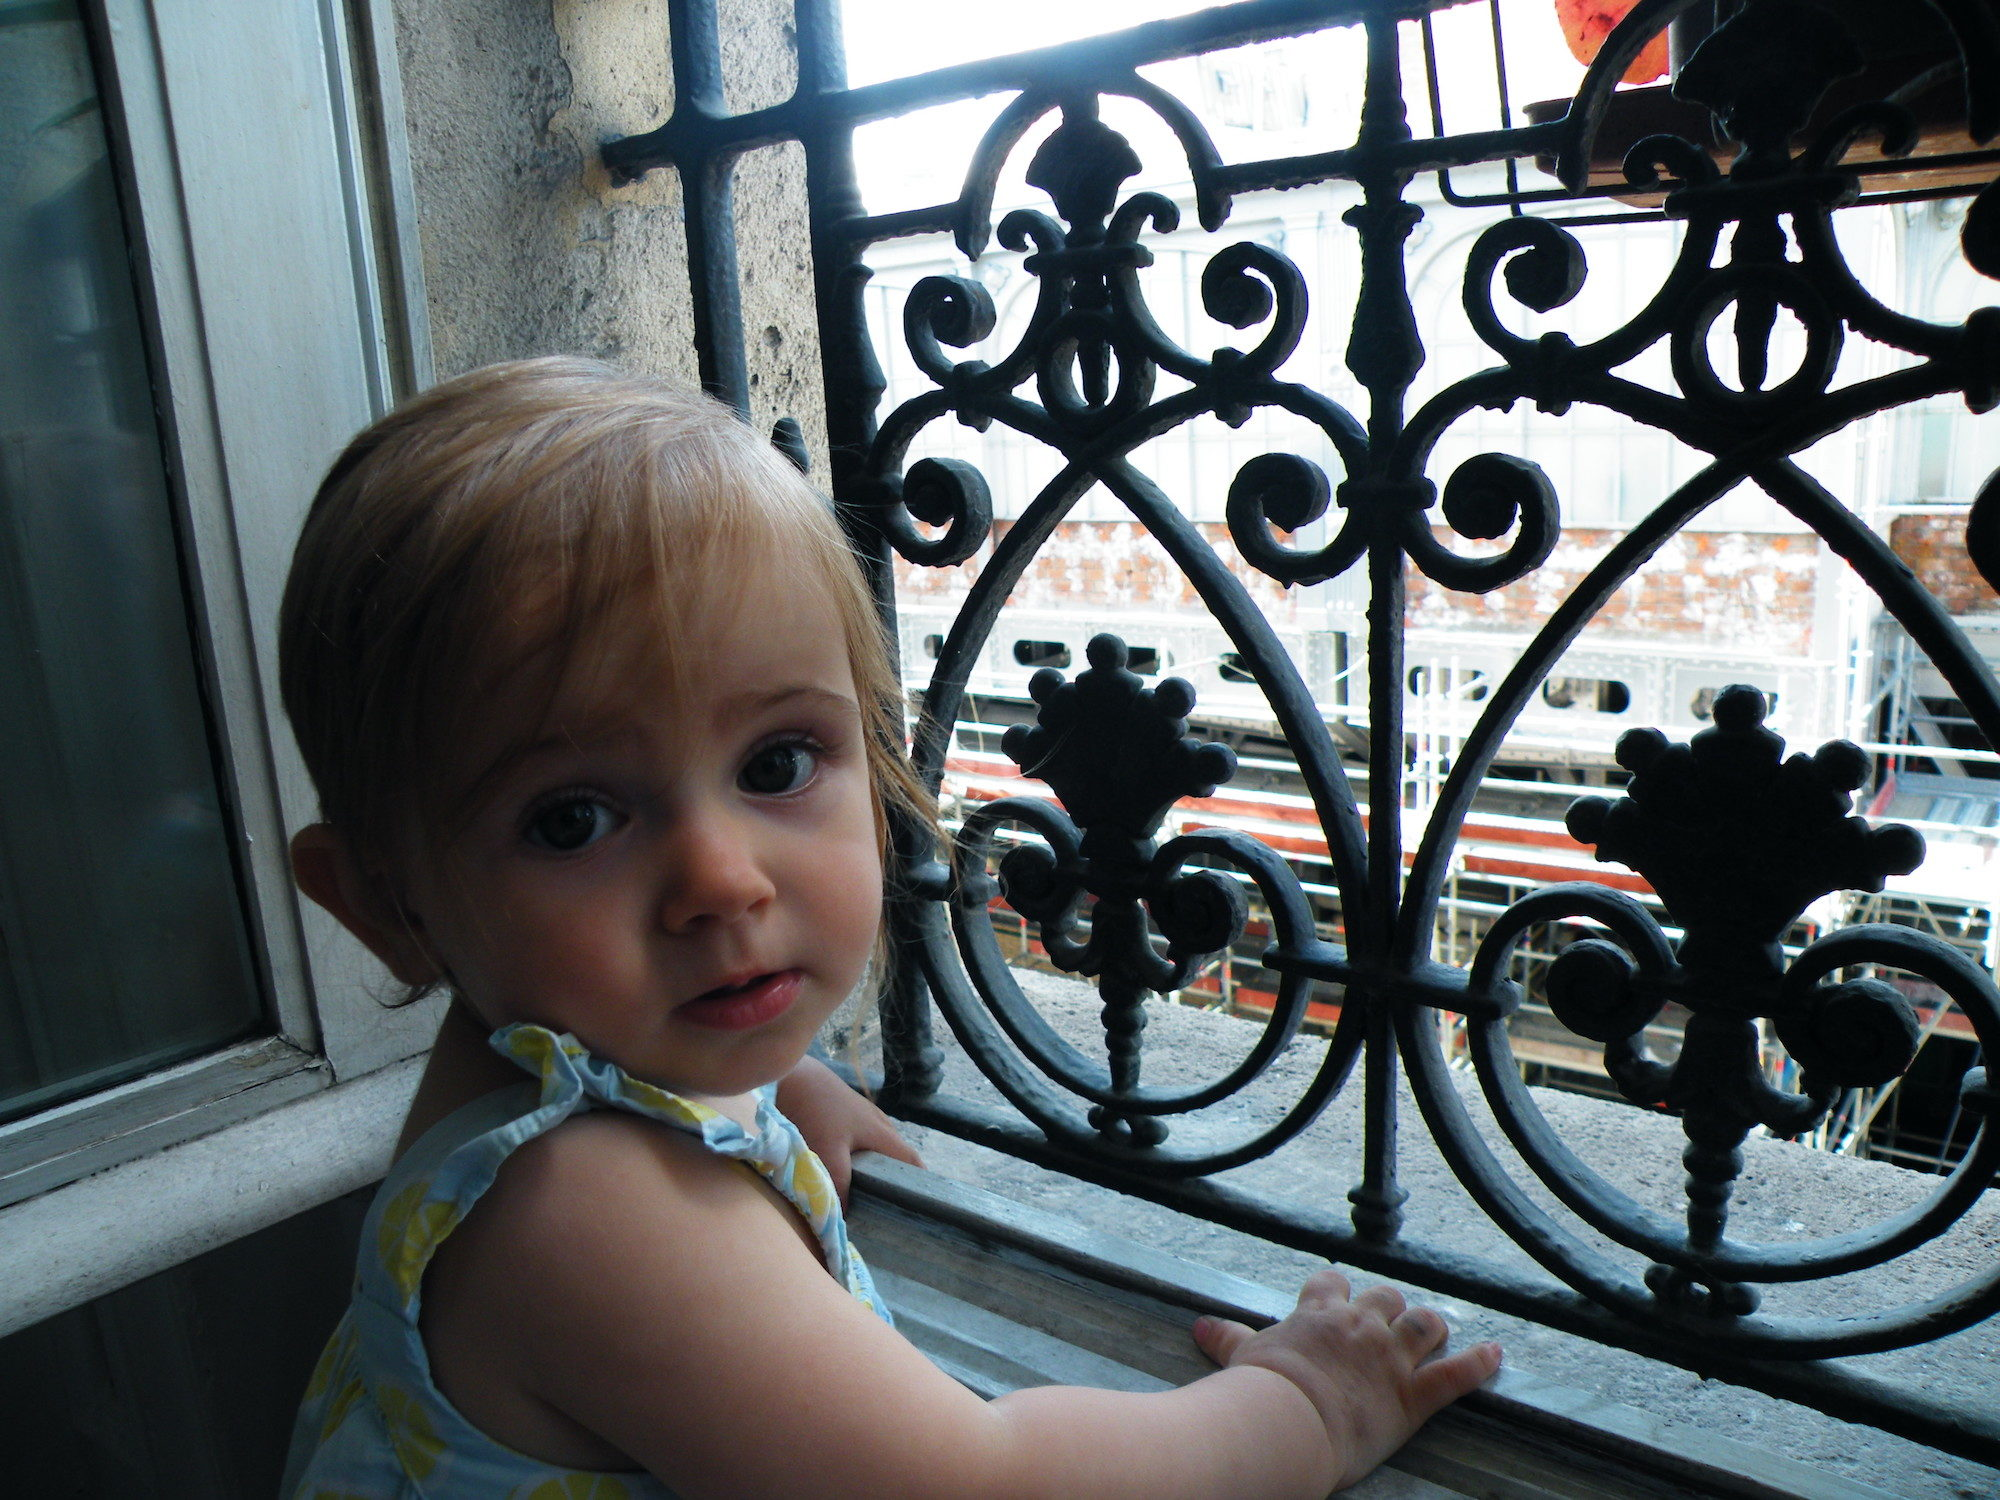 HiP Paris Blog explores what it's like traveling to Paris with babies like this cute little girl looking out of a Paris apartment window.